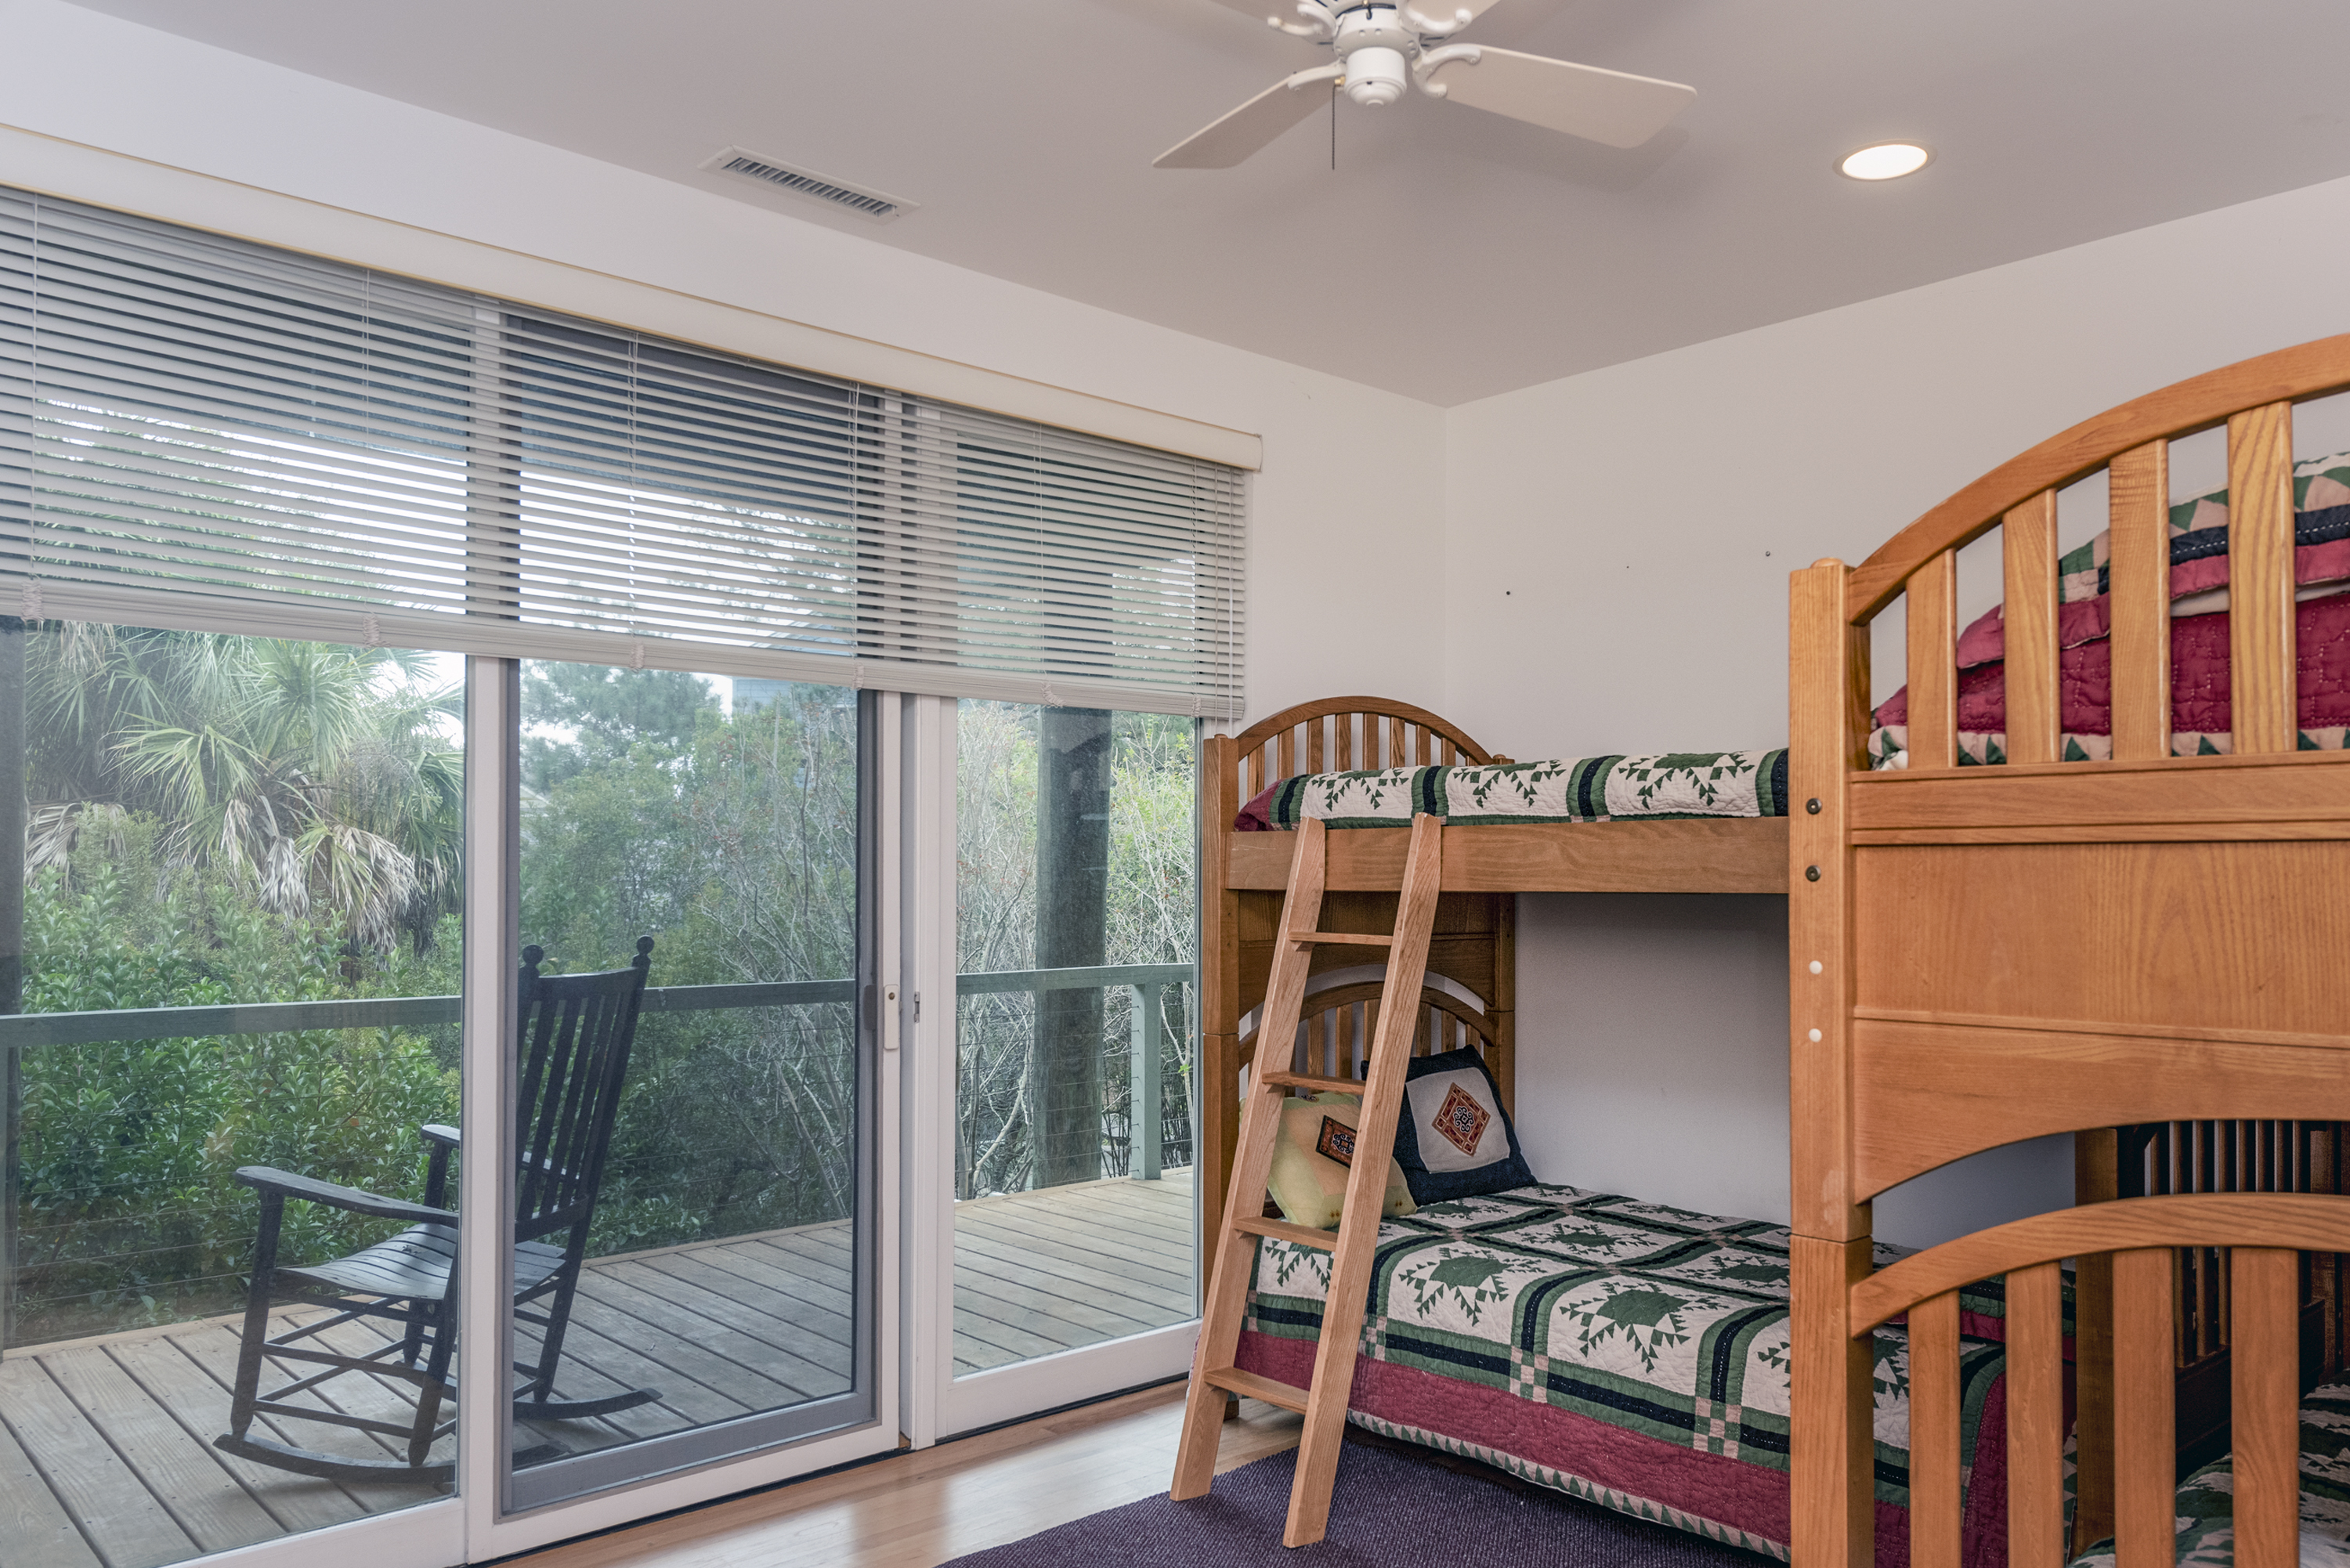 Guest room with 2 bunk beds and access to deck